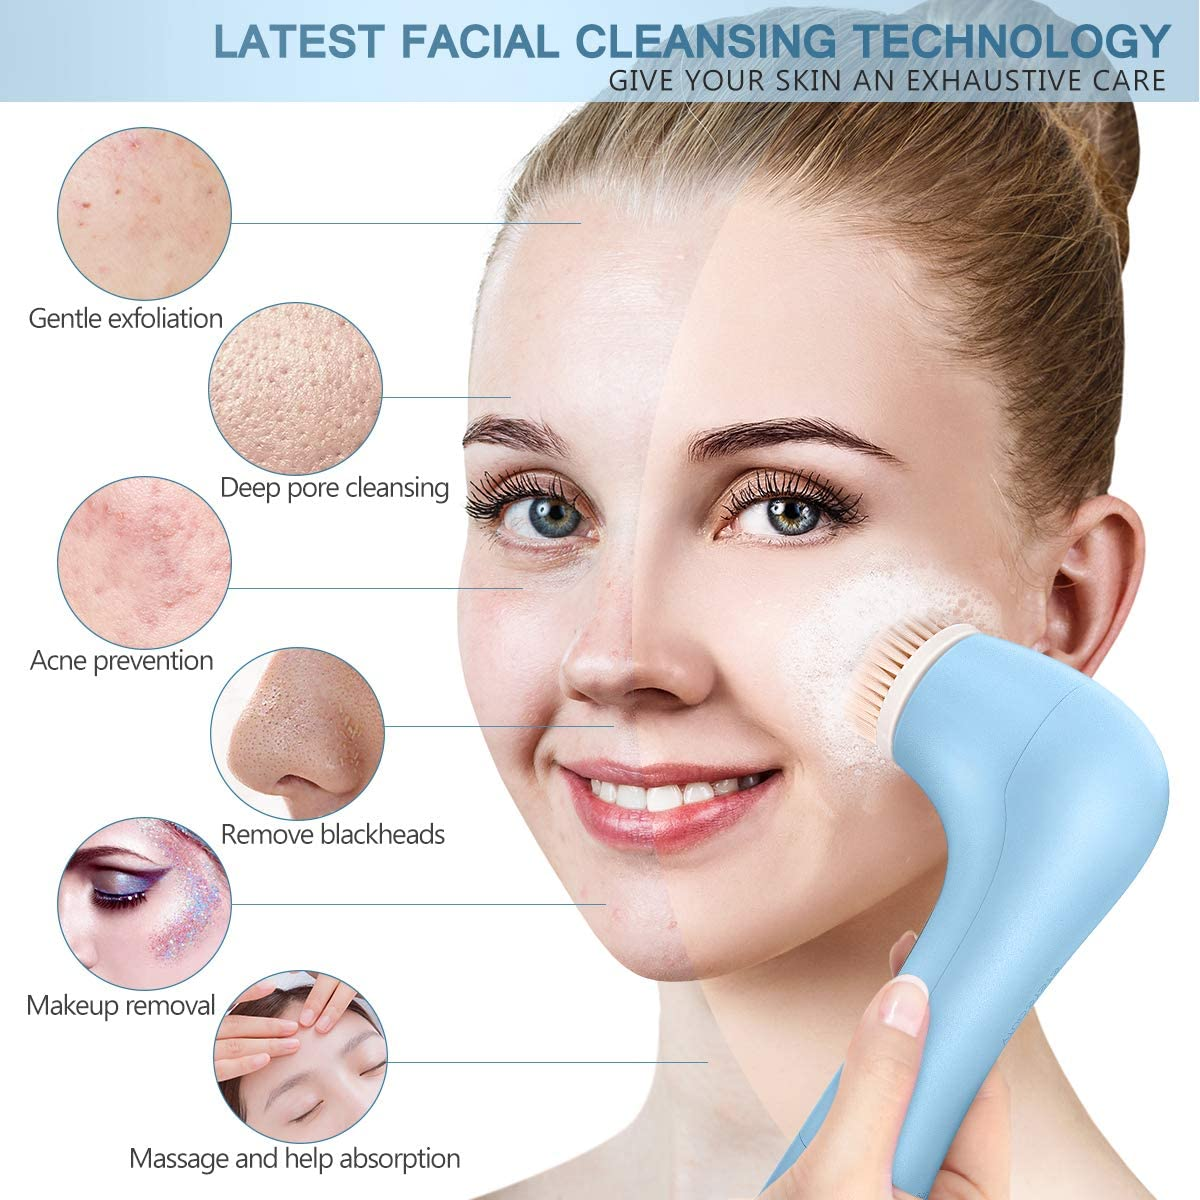 Facial Cleansing Brush Waterproof Face Spin Brush with 7 Brush Heads for Deep Cleansing, Gentle Exfoliating, Massaging,Blue